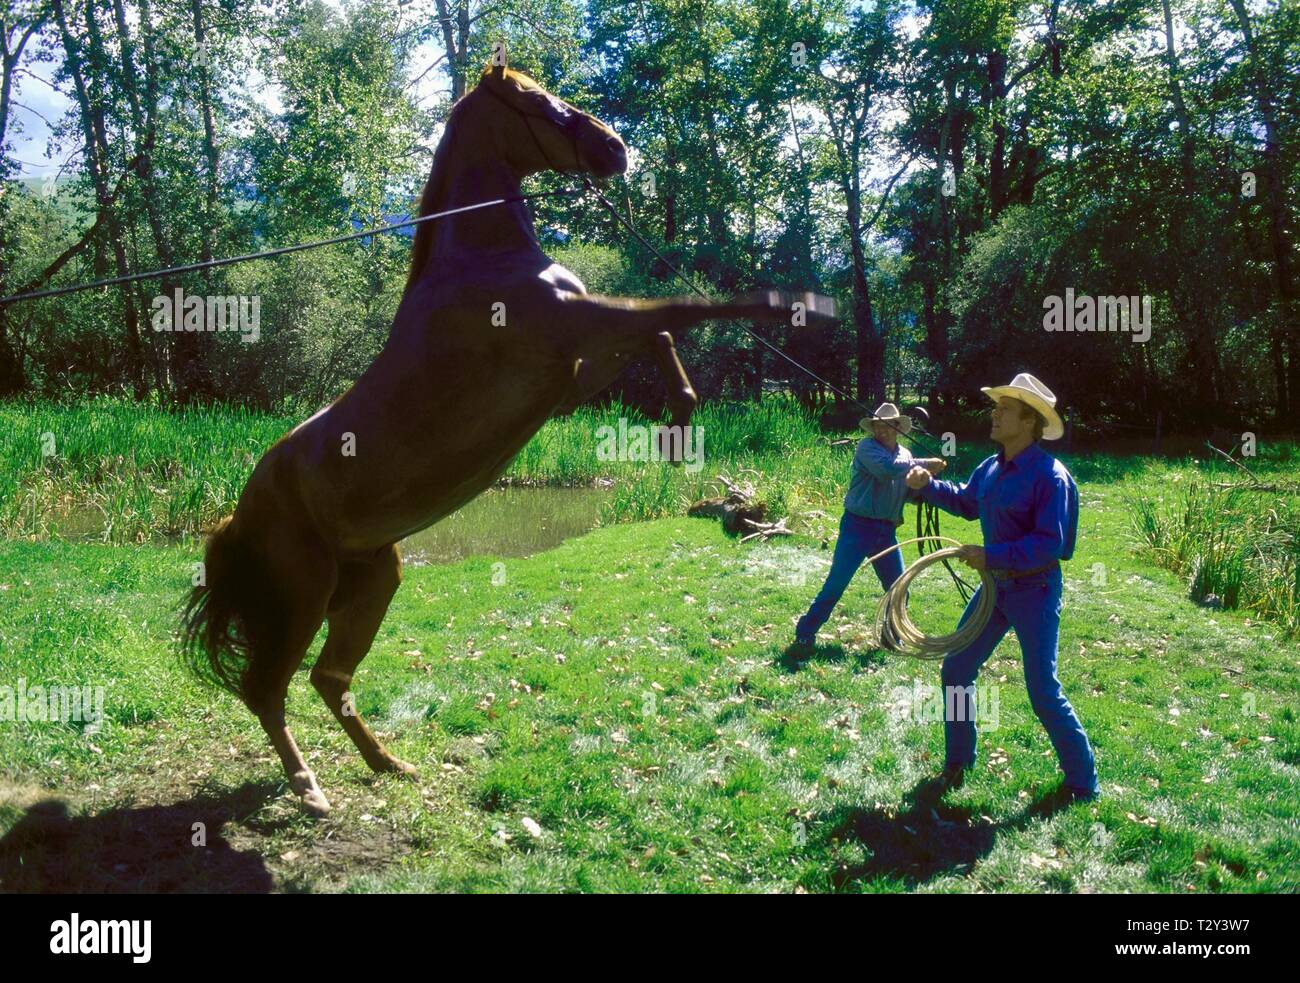 The Horse Whisperer Robert Redford High Resolution Stock Photography And Images Alamy